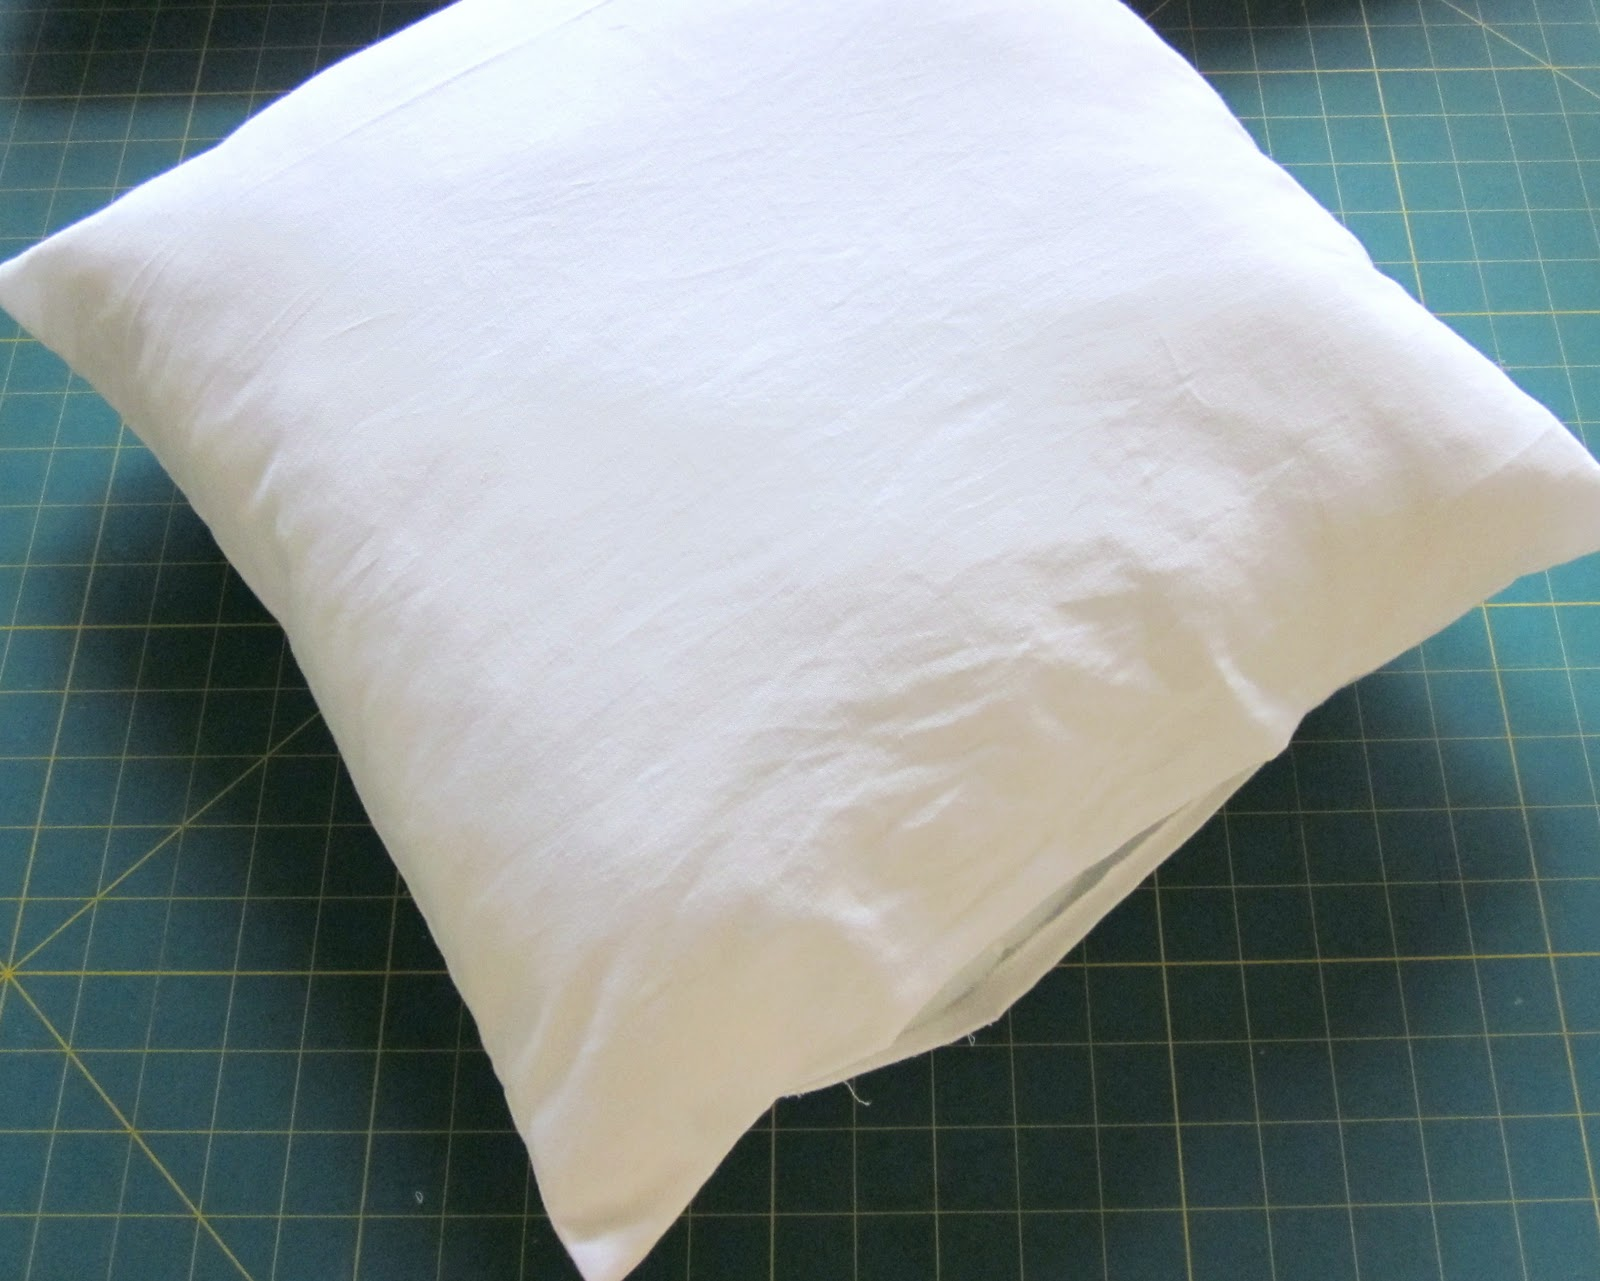 supply forms ultimate puf shop upholstery pfd action pillow